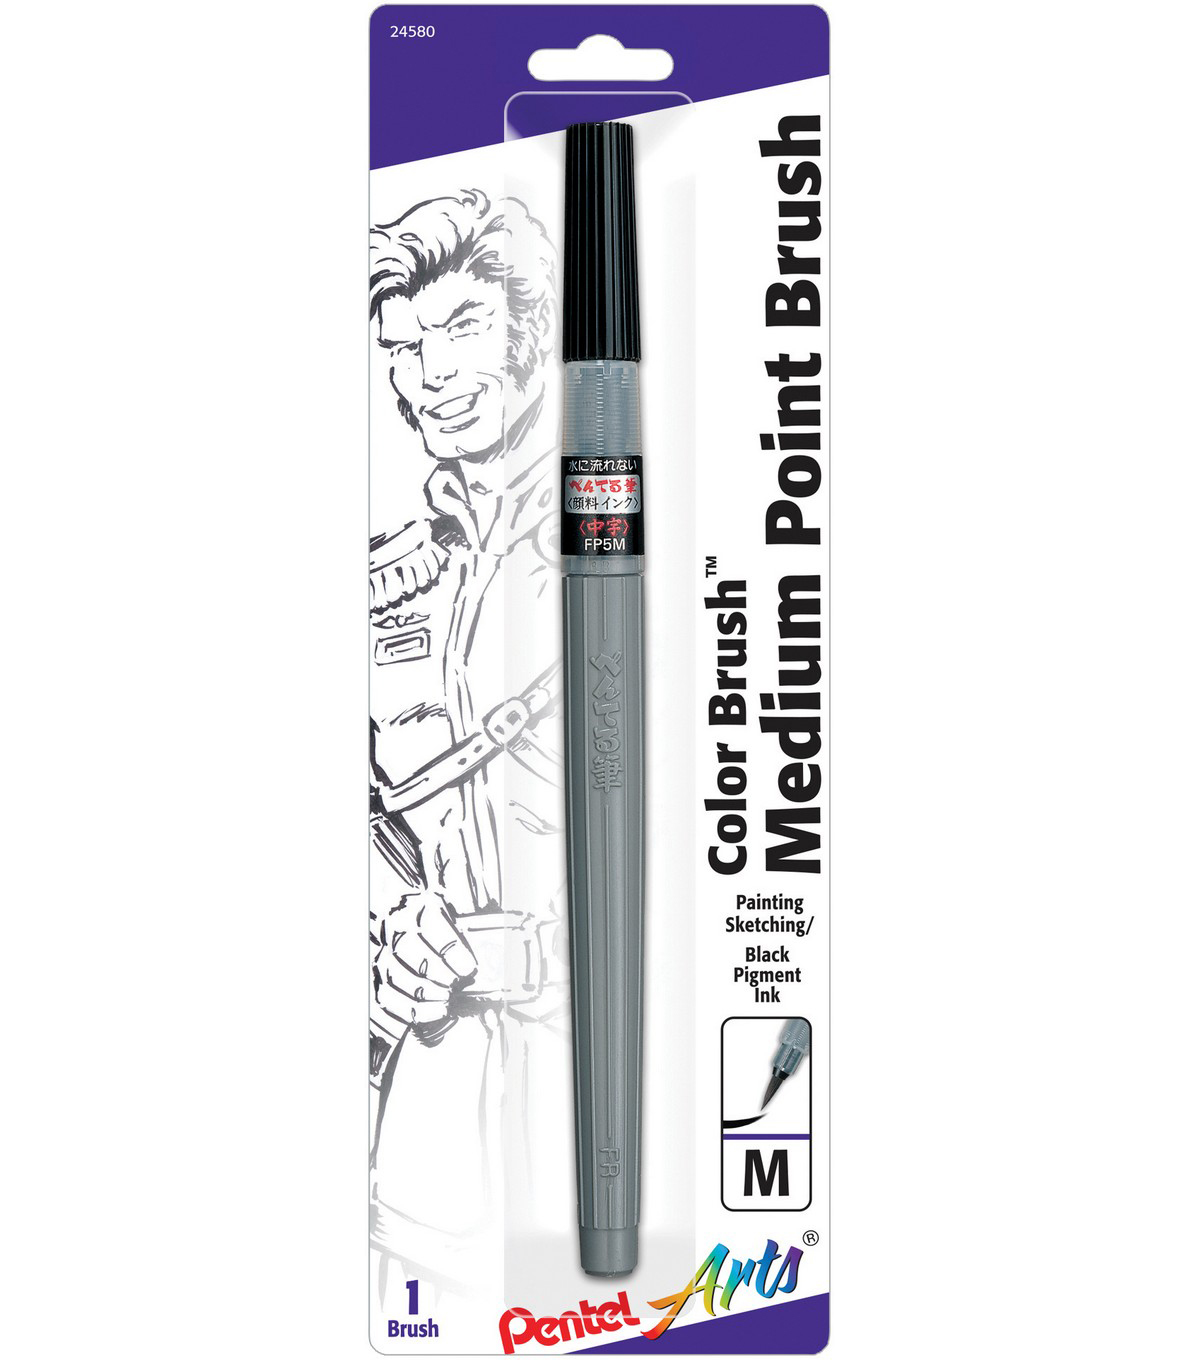 Pentel Arts Color Brush Pen-Medium Tip, Black Pigment Ink